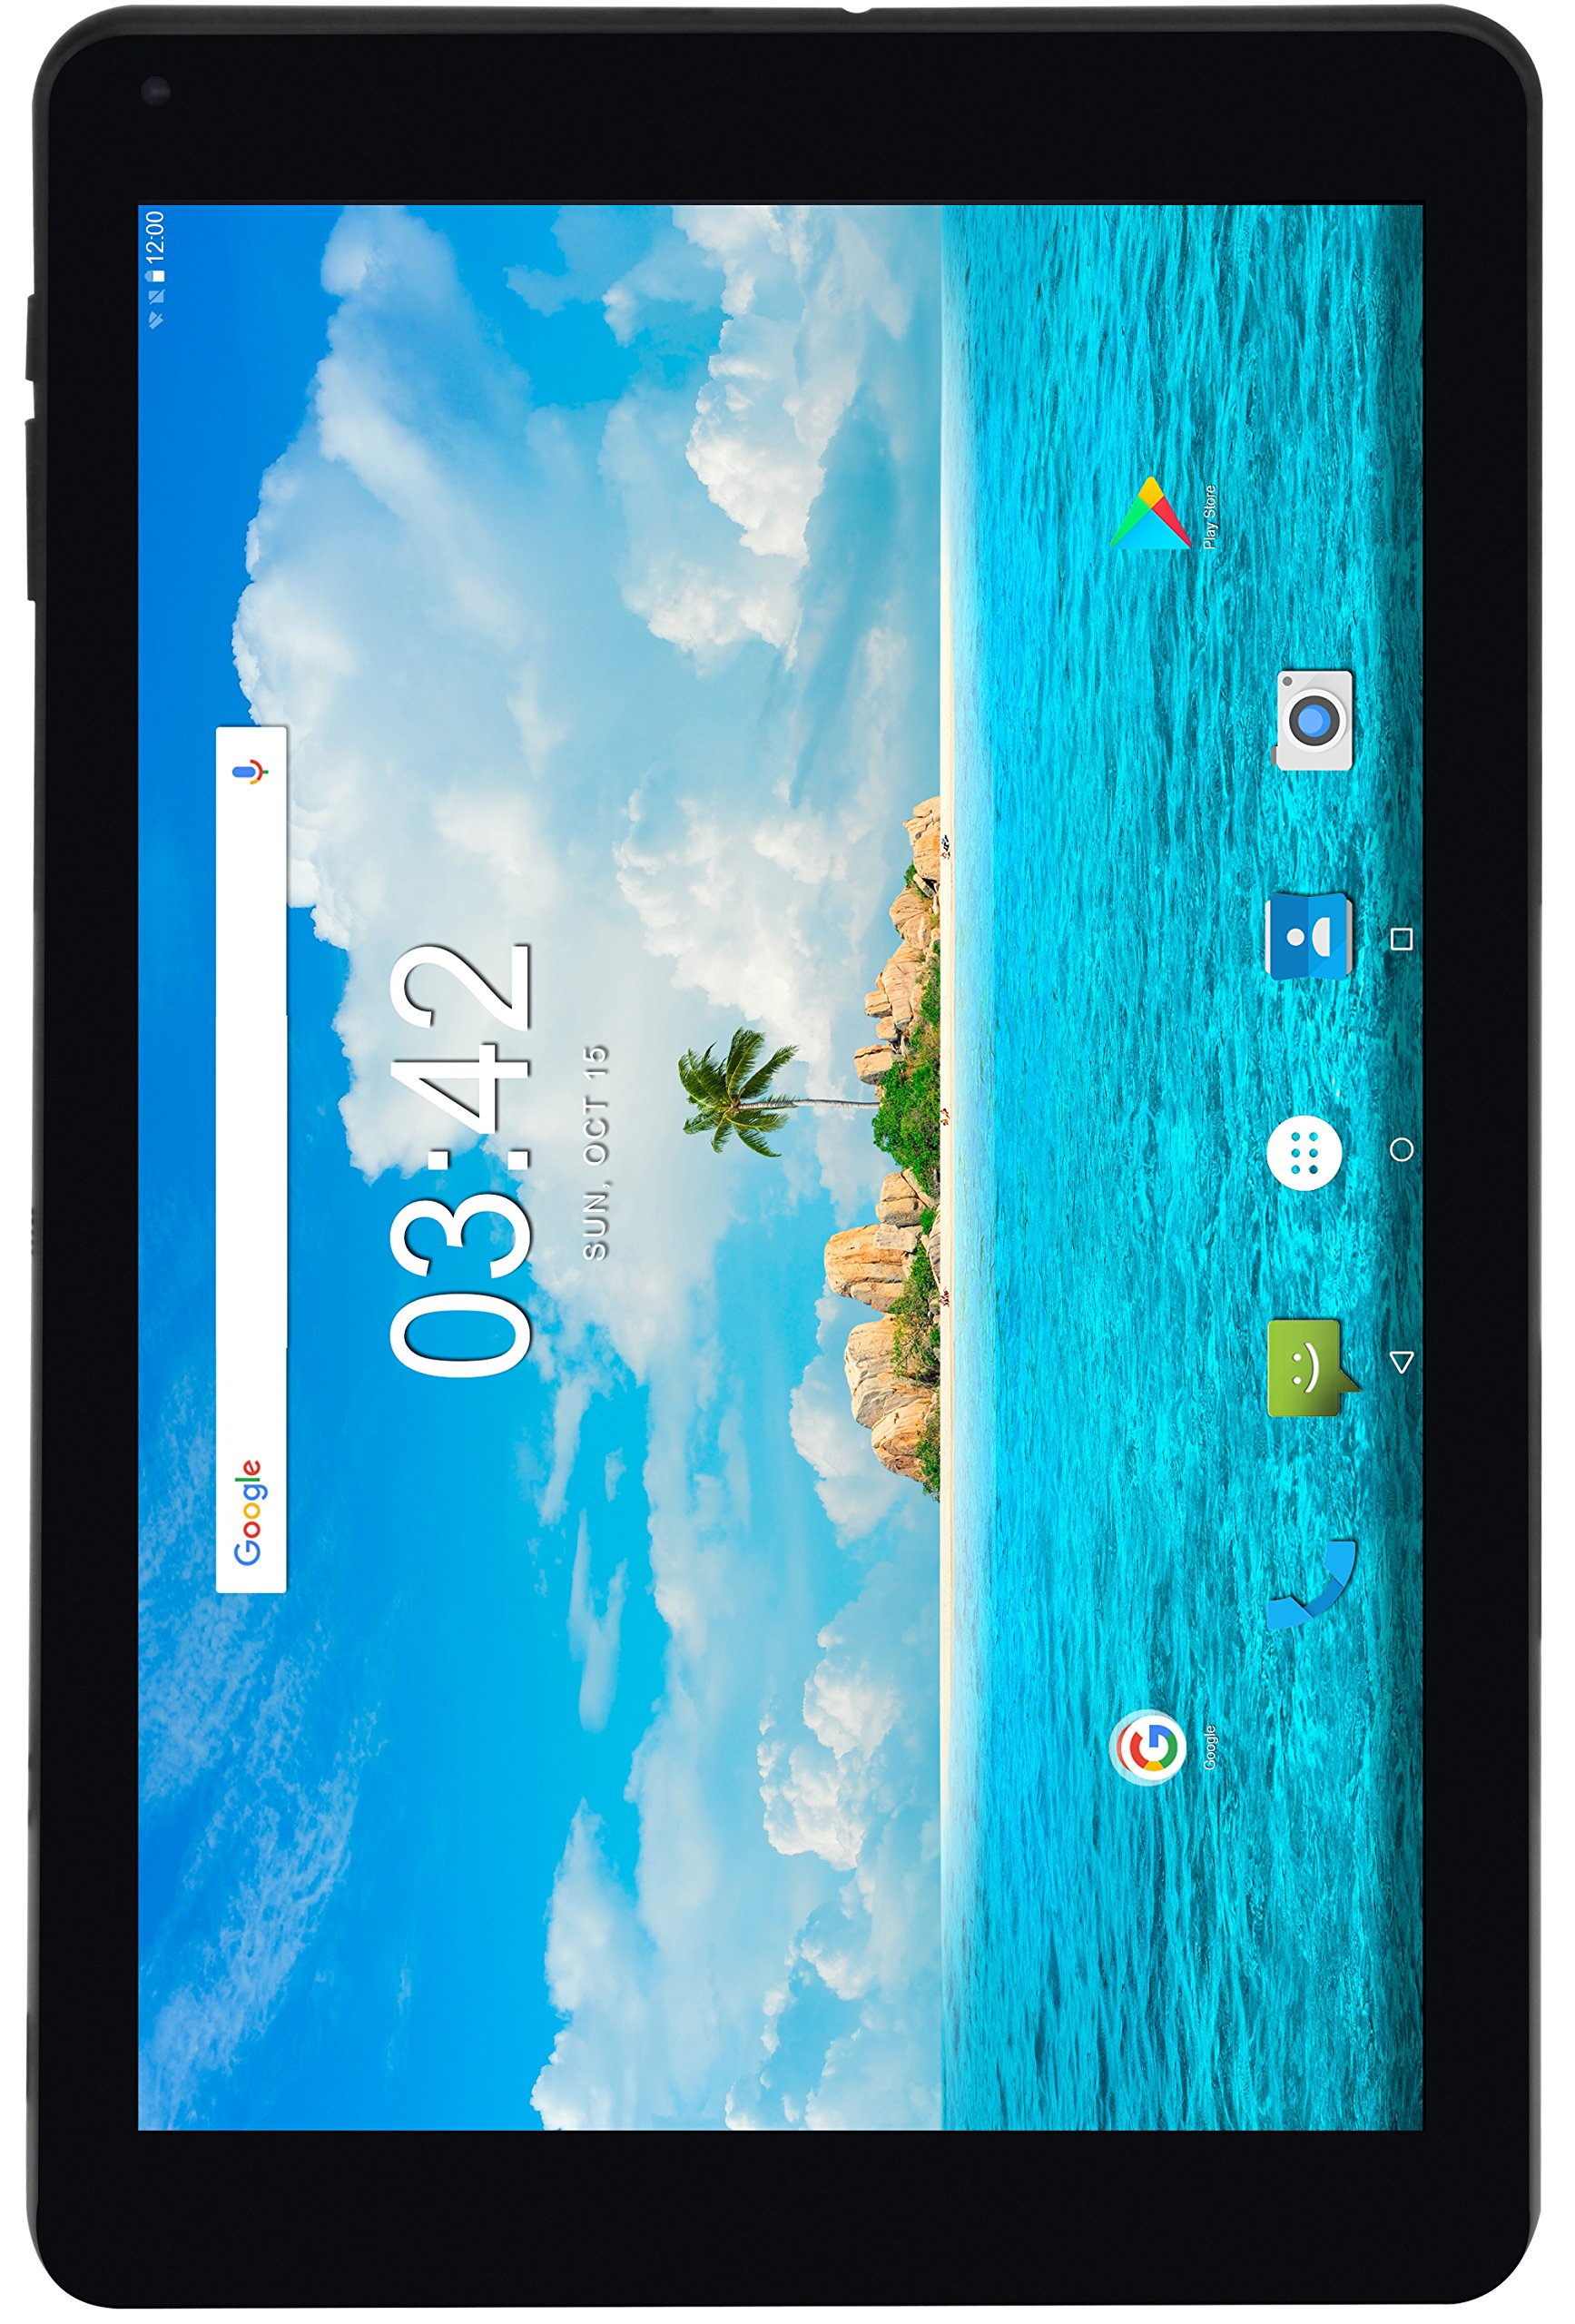 Utopia 10.1-Inch Android 7.0 Tablet - 2GB RAM - 5MP AF Rear & 2MP FF Front Camera - 1.3GHz Quad-Core Processor - 3G Compatible (WCDMA 850/1900/2100MHz), Wi-Fi, Bluetooth - 16GB Storage - Leather Case